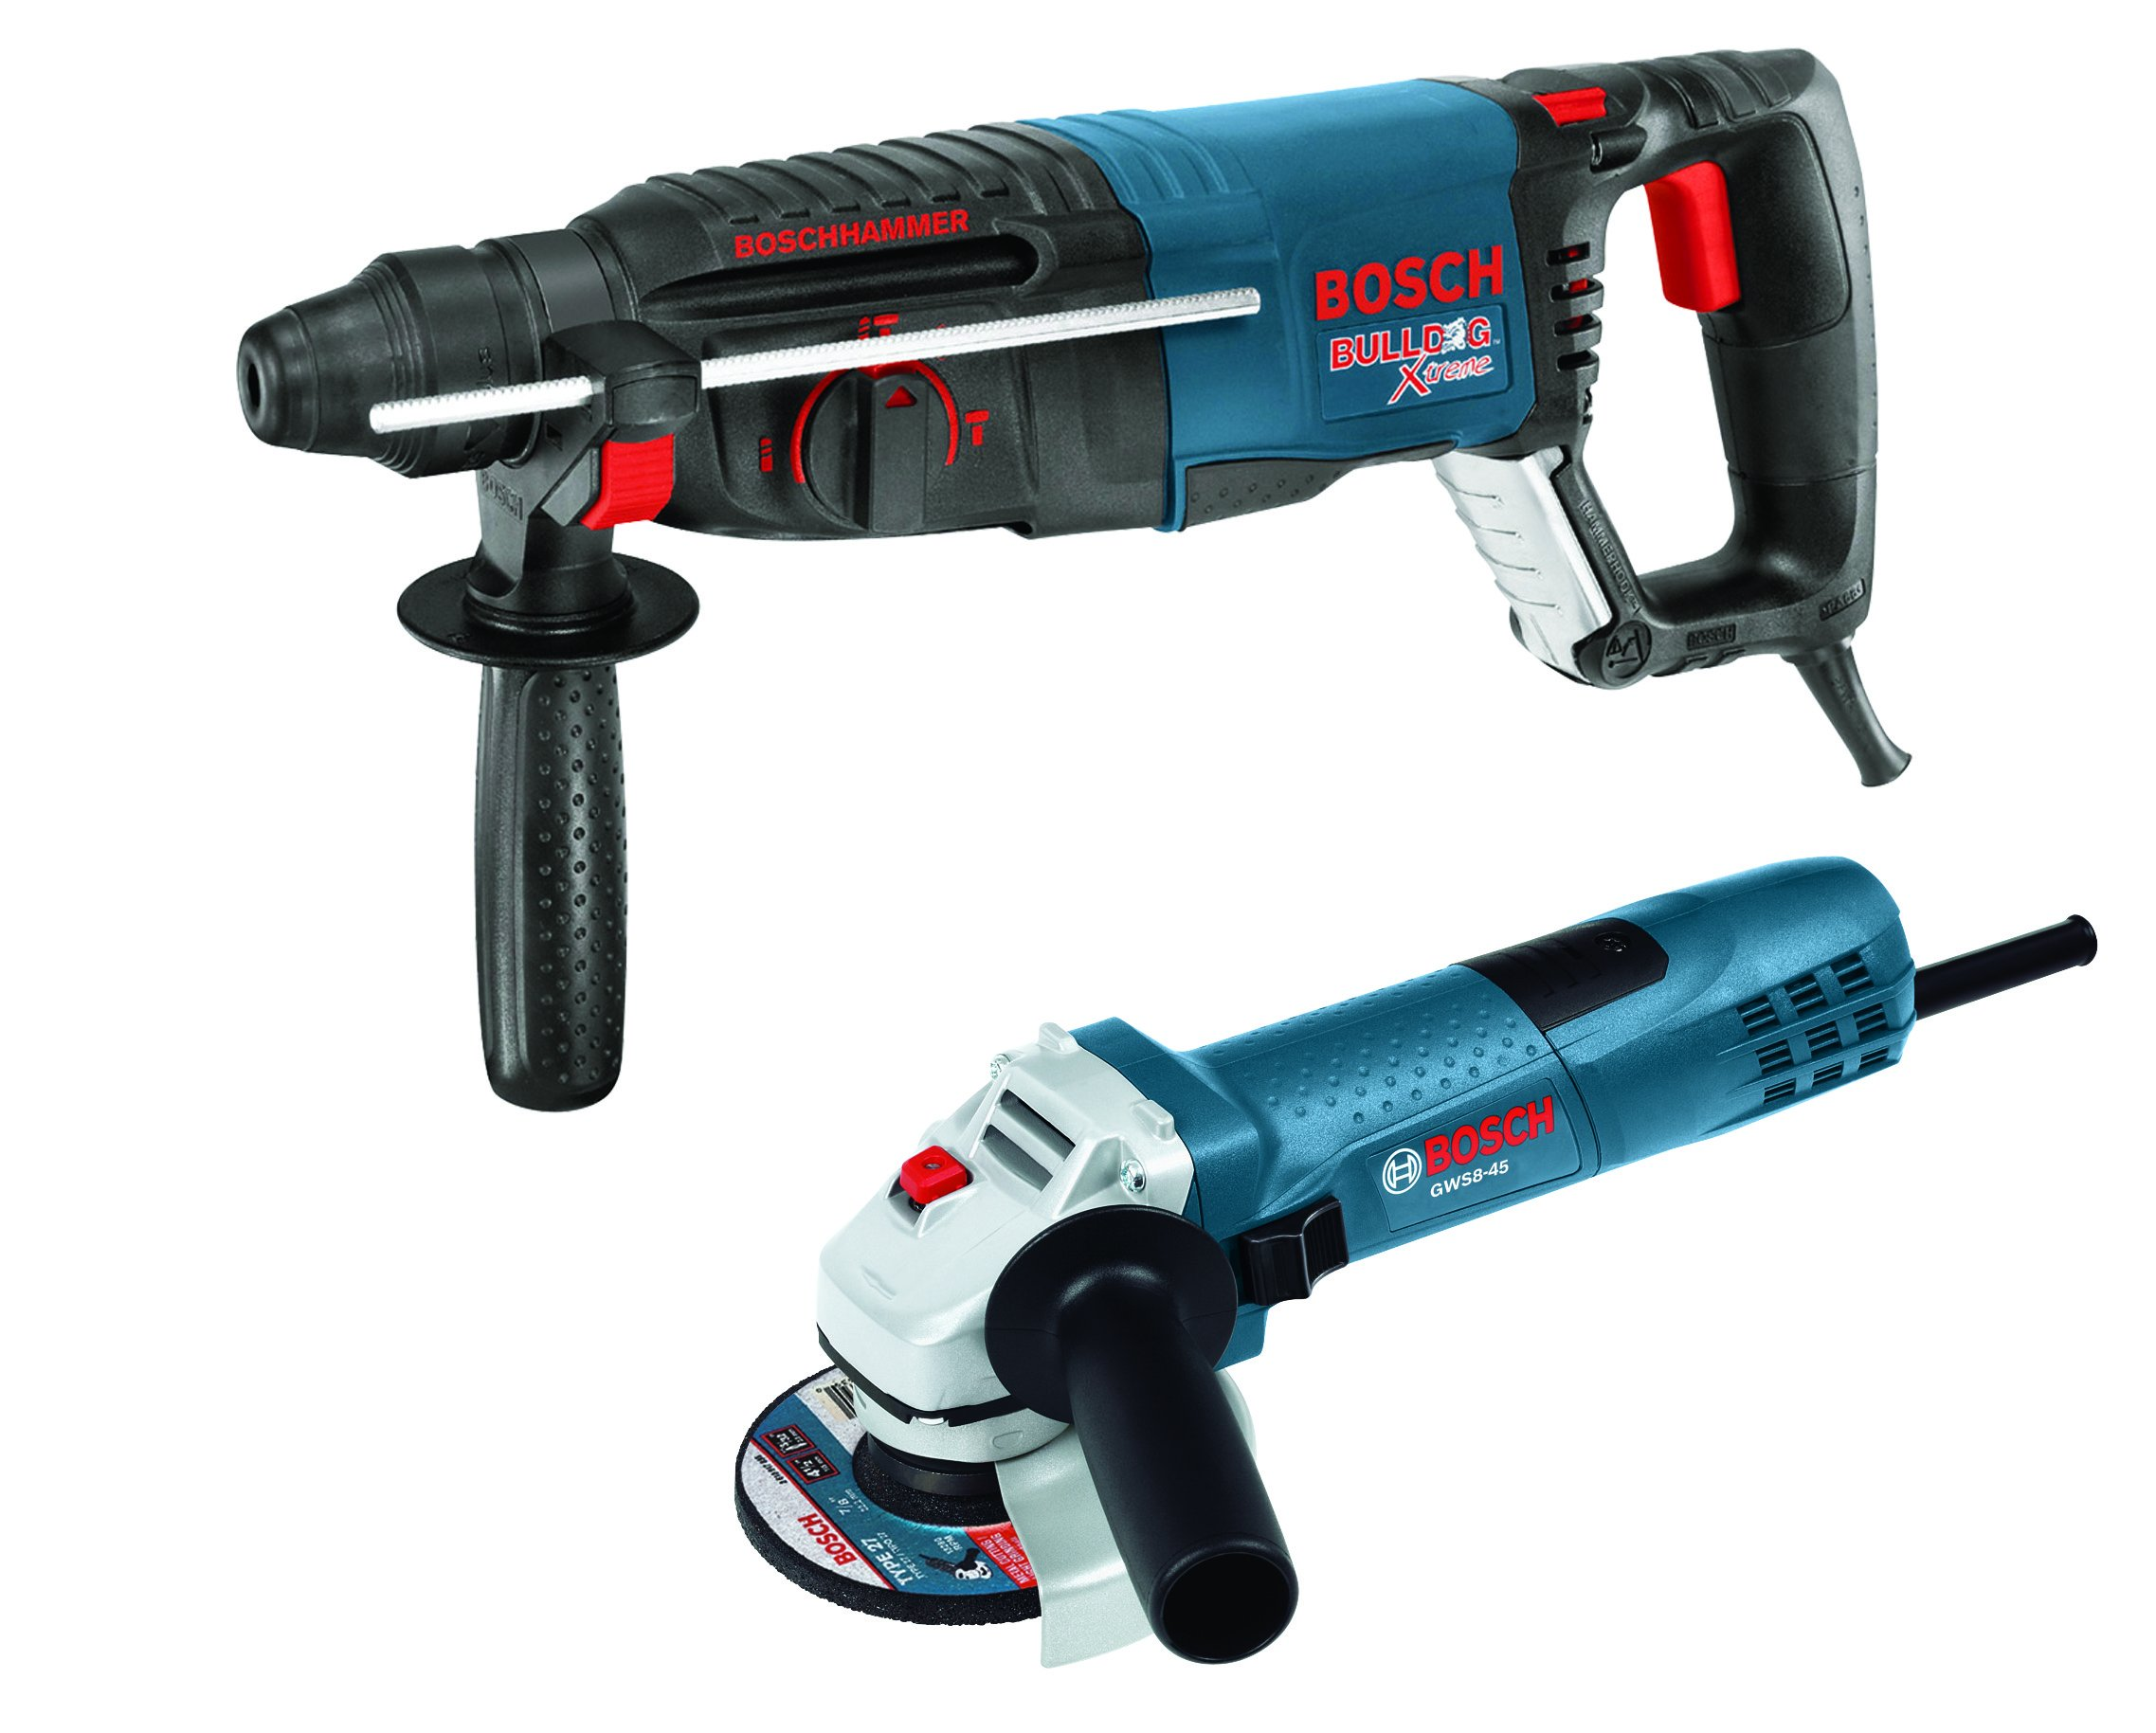 Bosch 11255VSR-GWS8 1'' SDS-plus Bulldog Xtreme Rotary Hammer with 4-1/2'' Small Angle Grinder, Blue